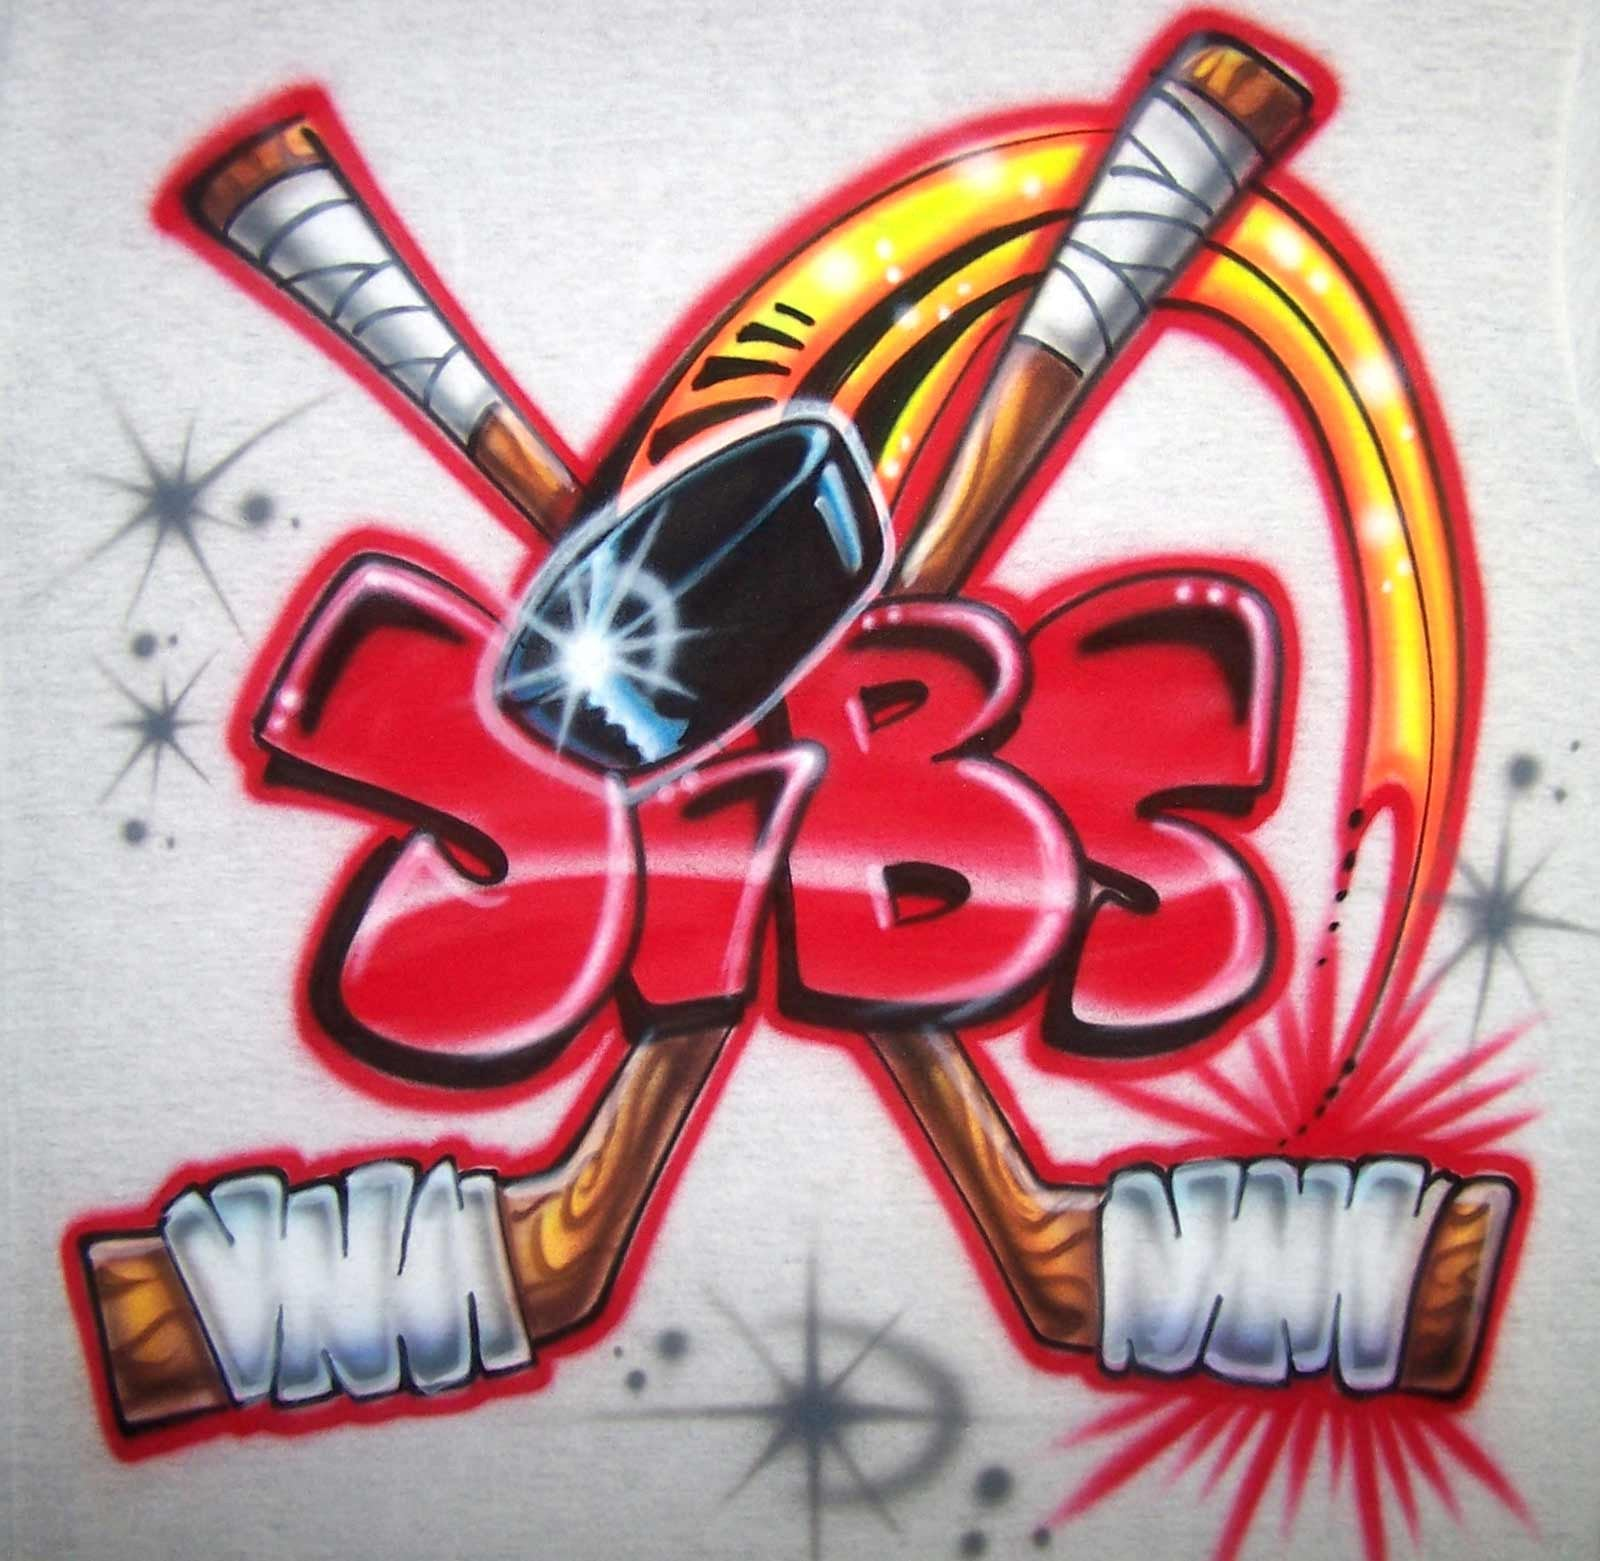 Personalized Hockey Towels: Airbrushed Ice Hockey Crossed Sticks & Puck Personalized Shirt